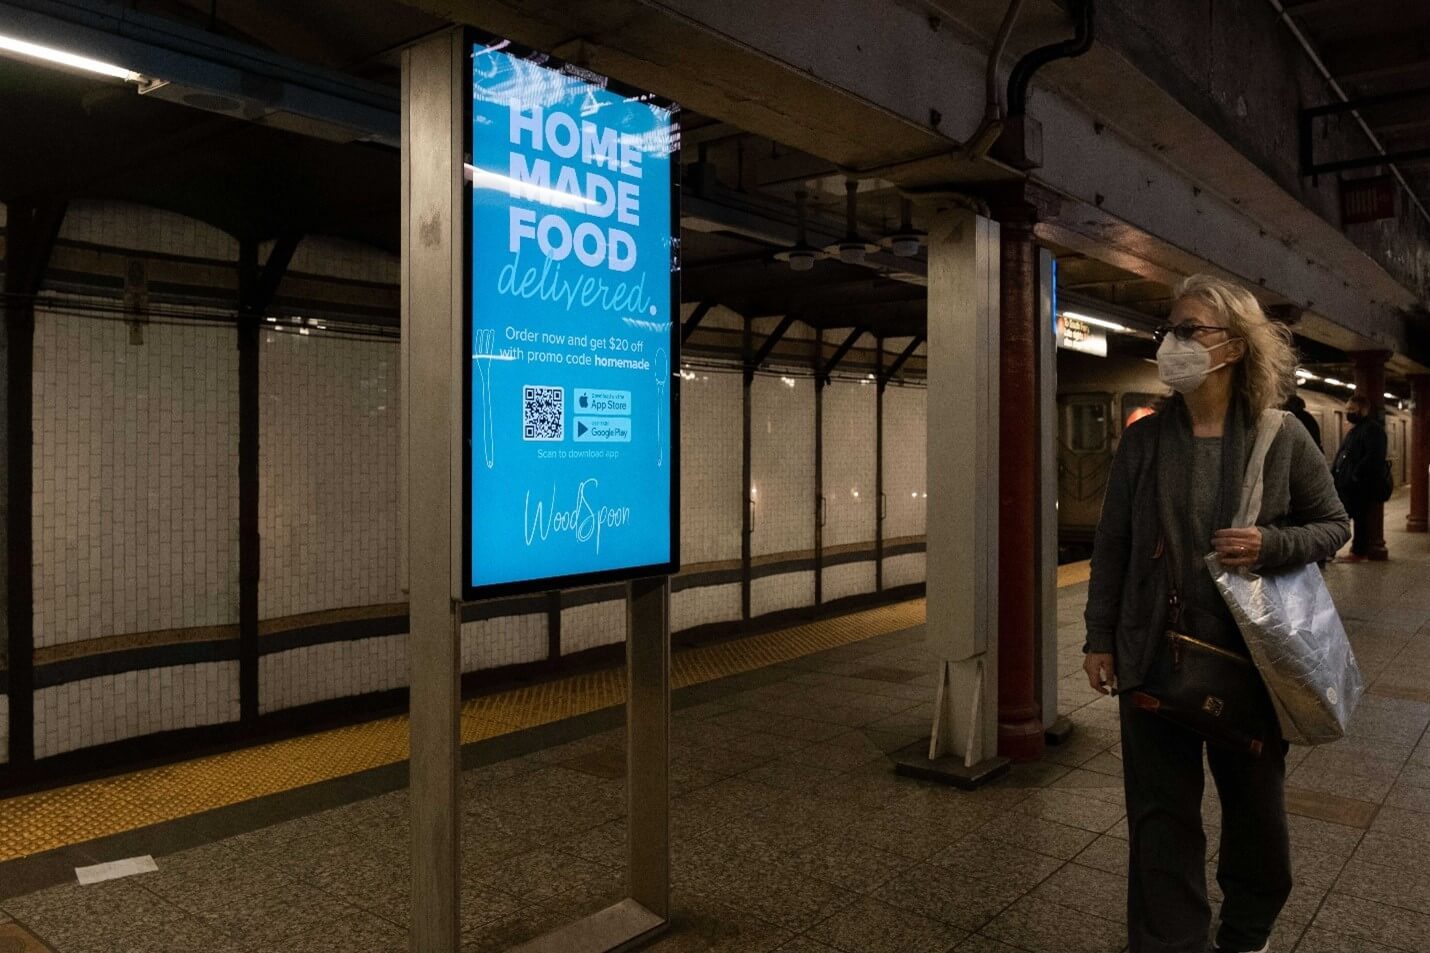 Creative Sample #2: Out-of-home digital ad in New York City subway station for food delivery platform